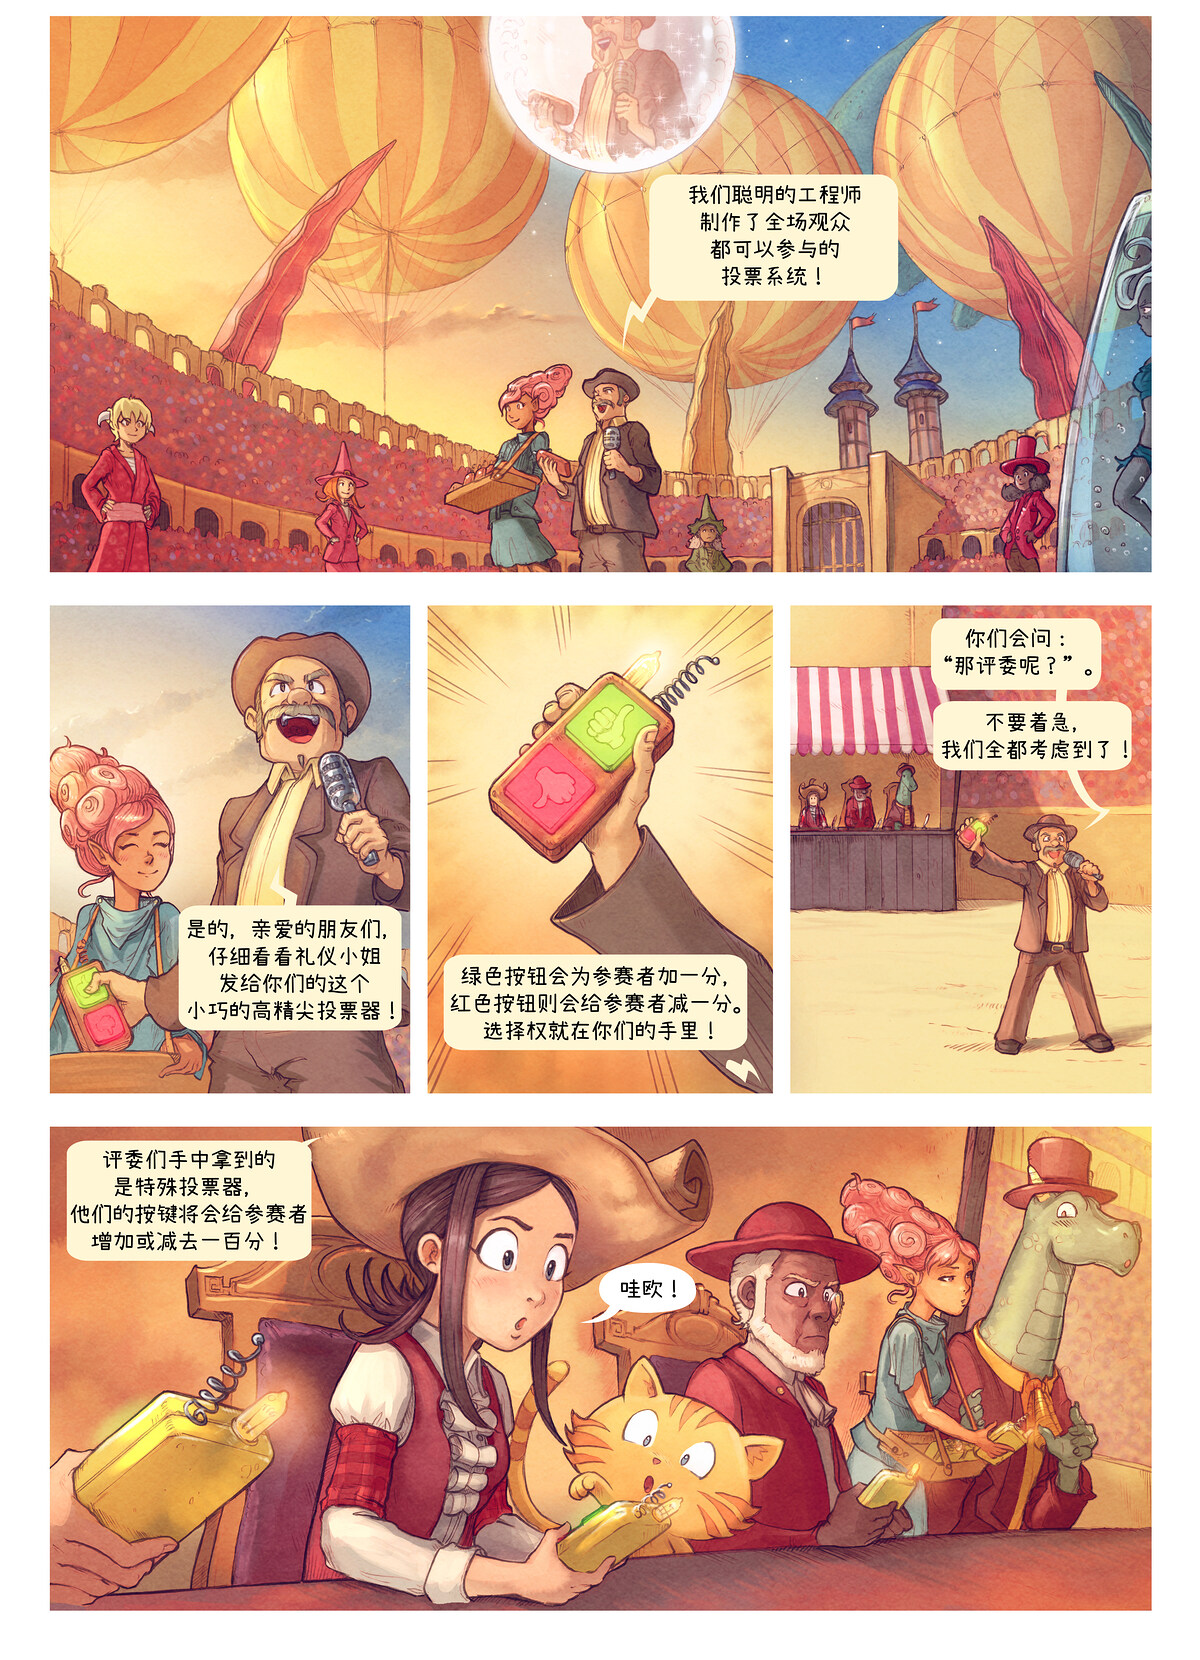 A webcomic page of Pepper&Carrot, 漫画全集 22 [cn], 页面 2